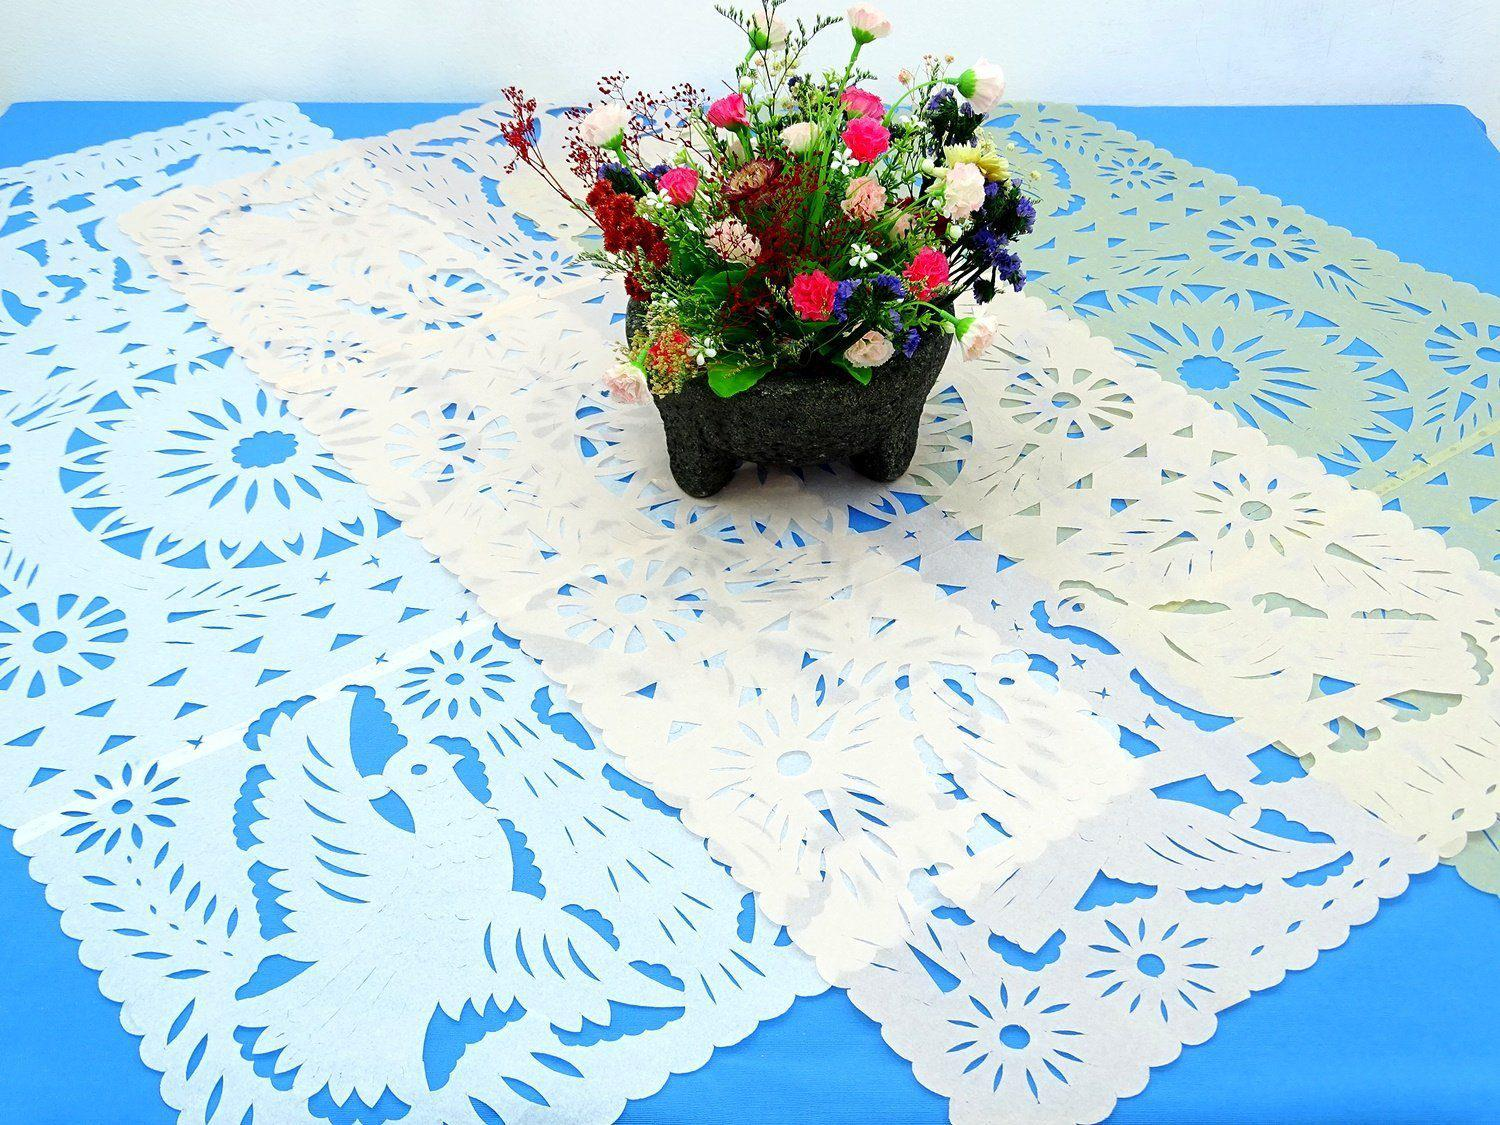 Papel Picado - 3 Pack Of Papel Picado Mexican Table Runners, 20X39 Inches,